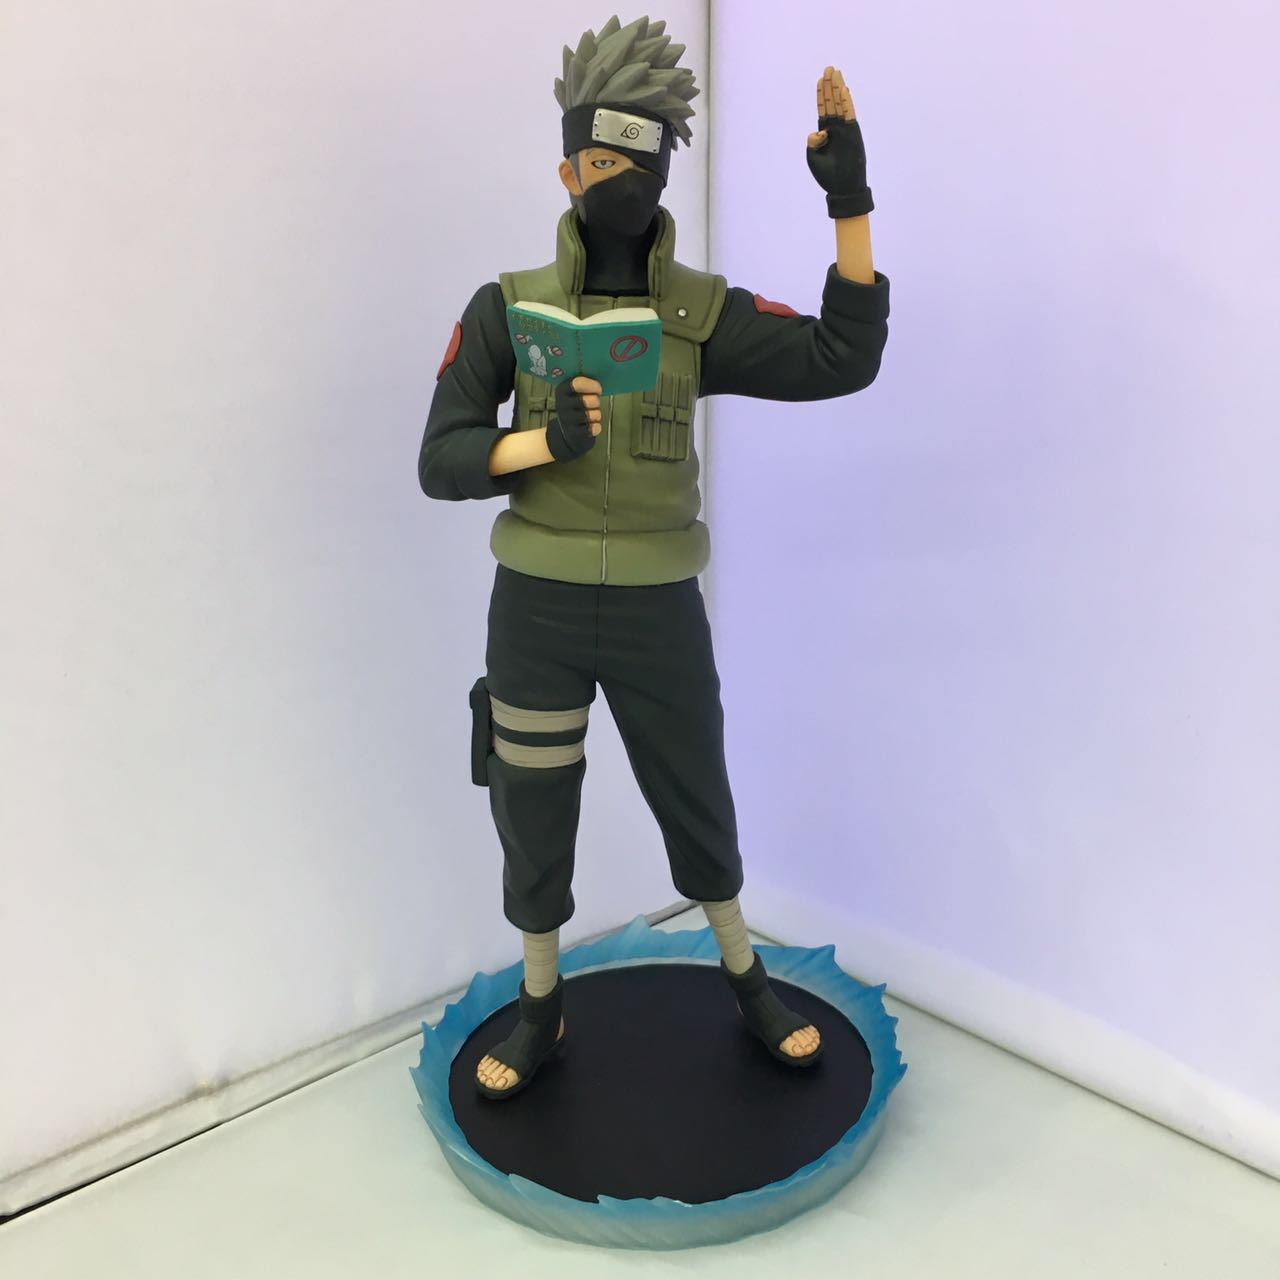 Naruto Kakashi Hatake Action Figure Sharingan Ver. Kakashi Doll PVC Action Figure Collectible Model Toy 30cm KT3510 original box anime naruto action figures lightning blade hatake kakashi figure pvc model 12cm collection children baby kids toys